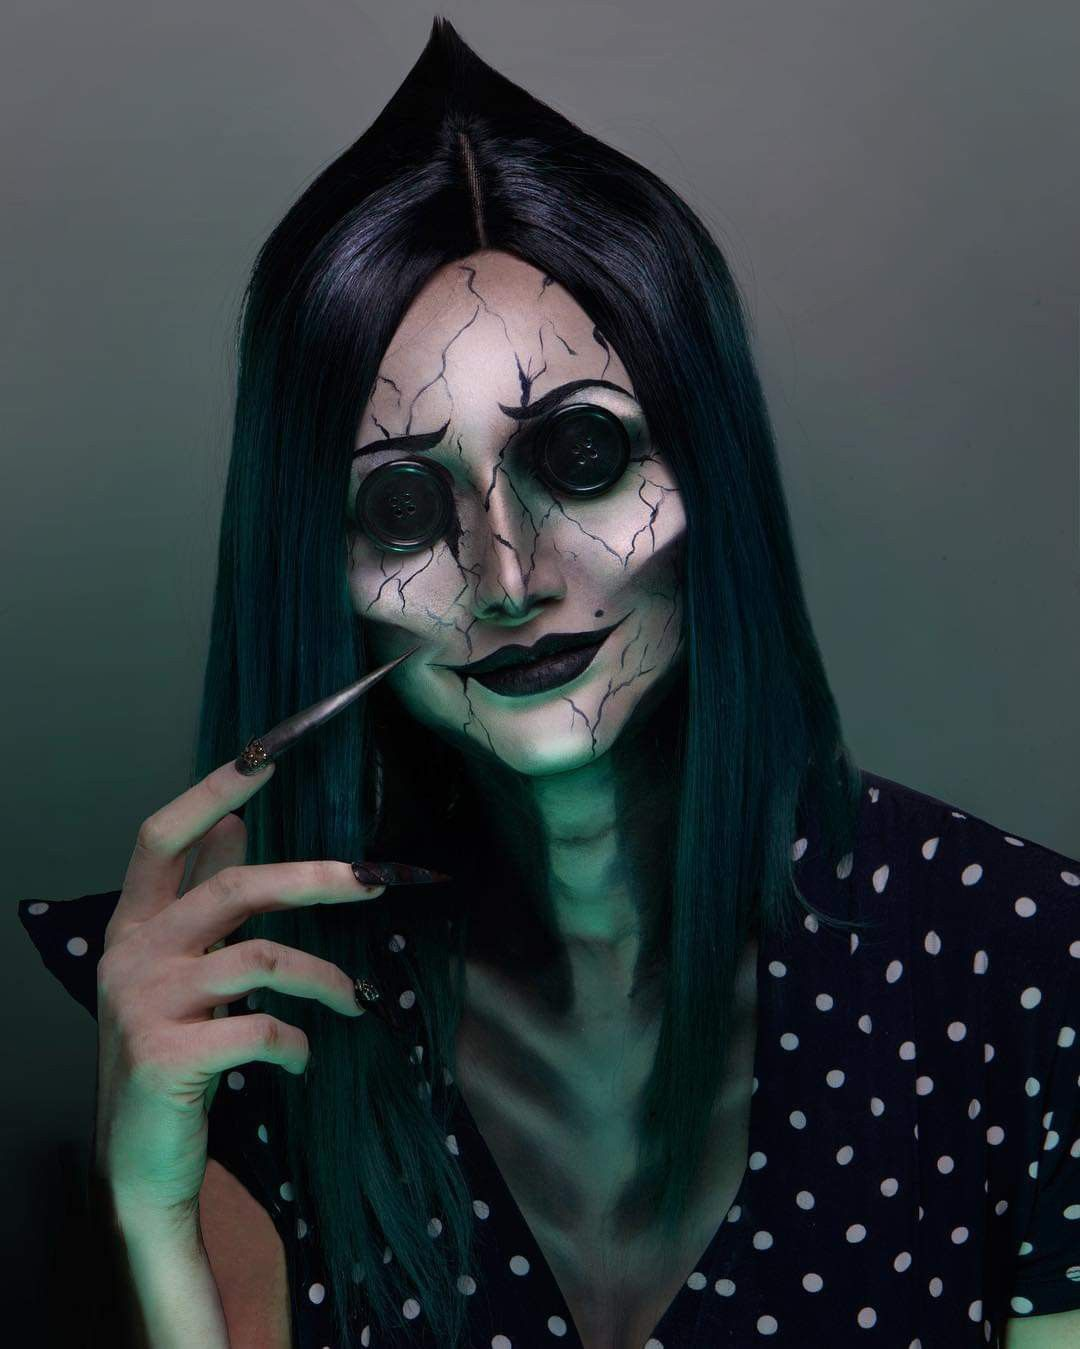 Pin By Jeannie Almonte On Beauty Cool Halloween Makeup Creepy Halloween Makeup Cute Halloween Makeup